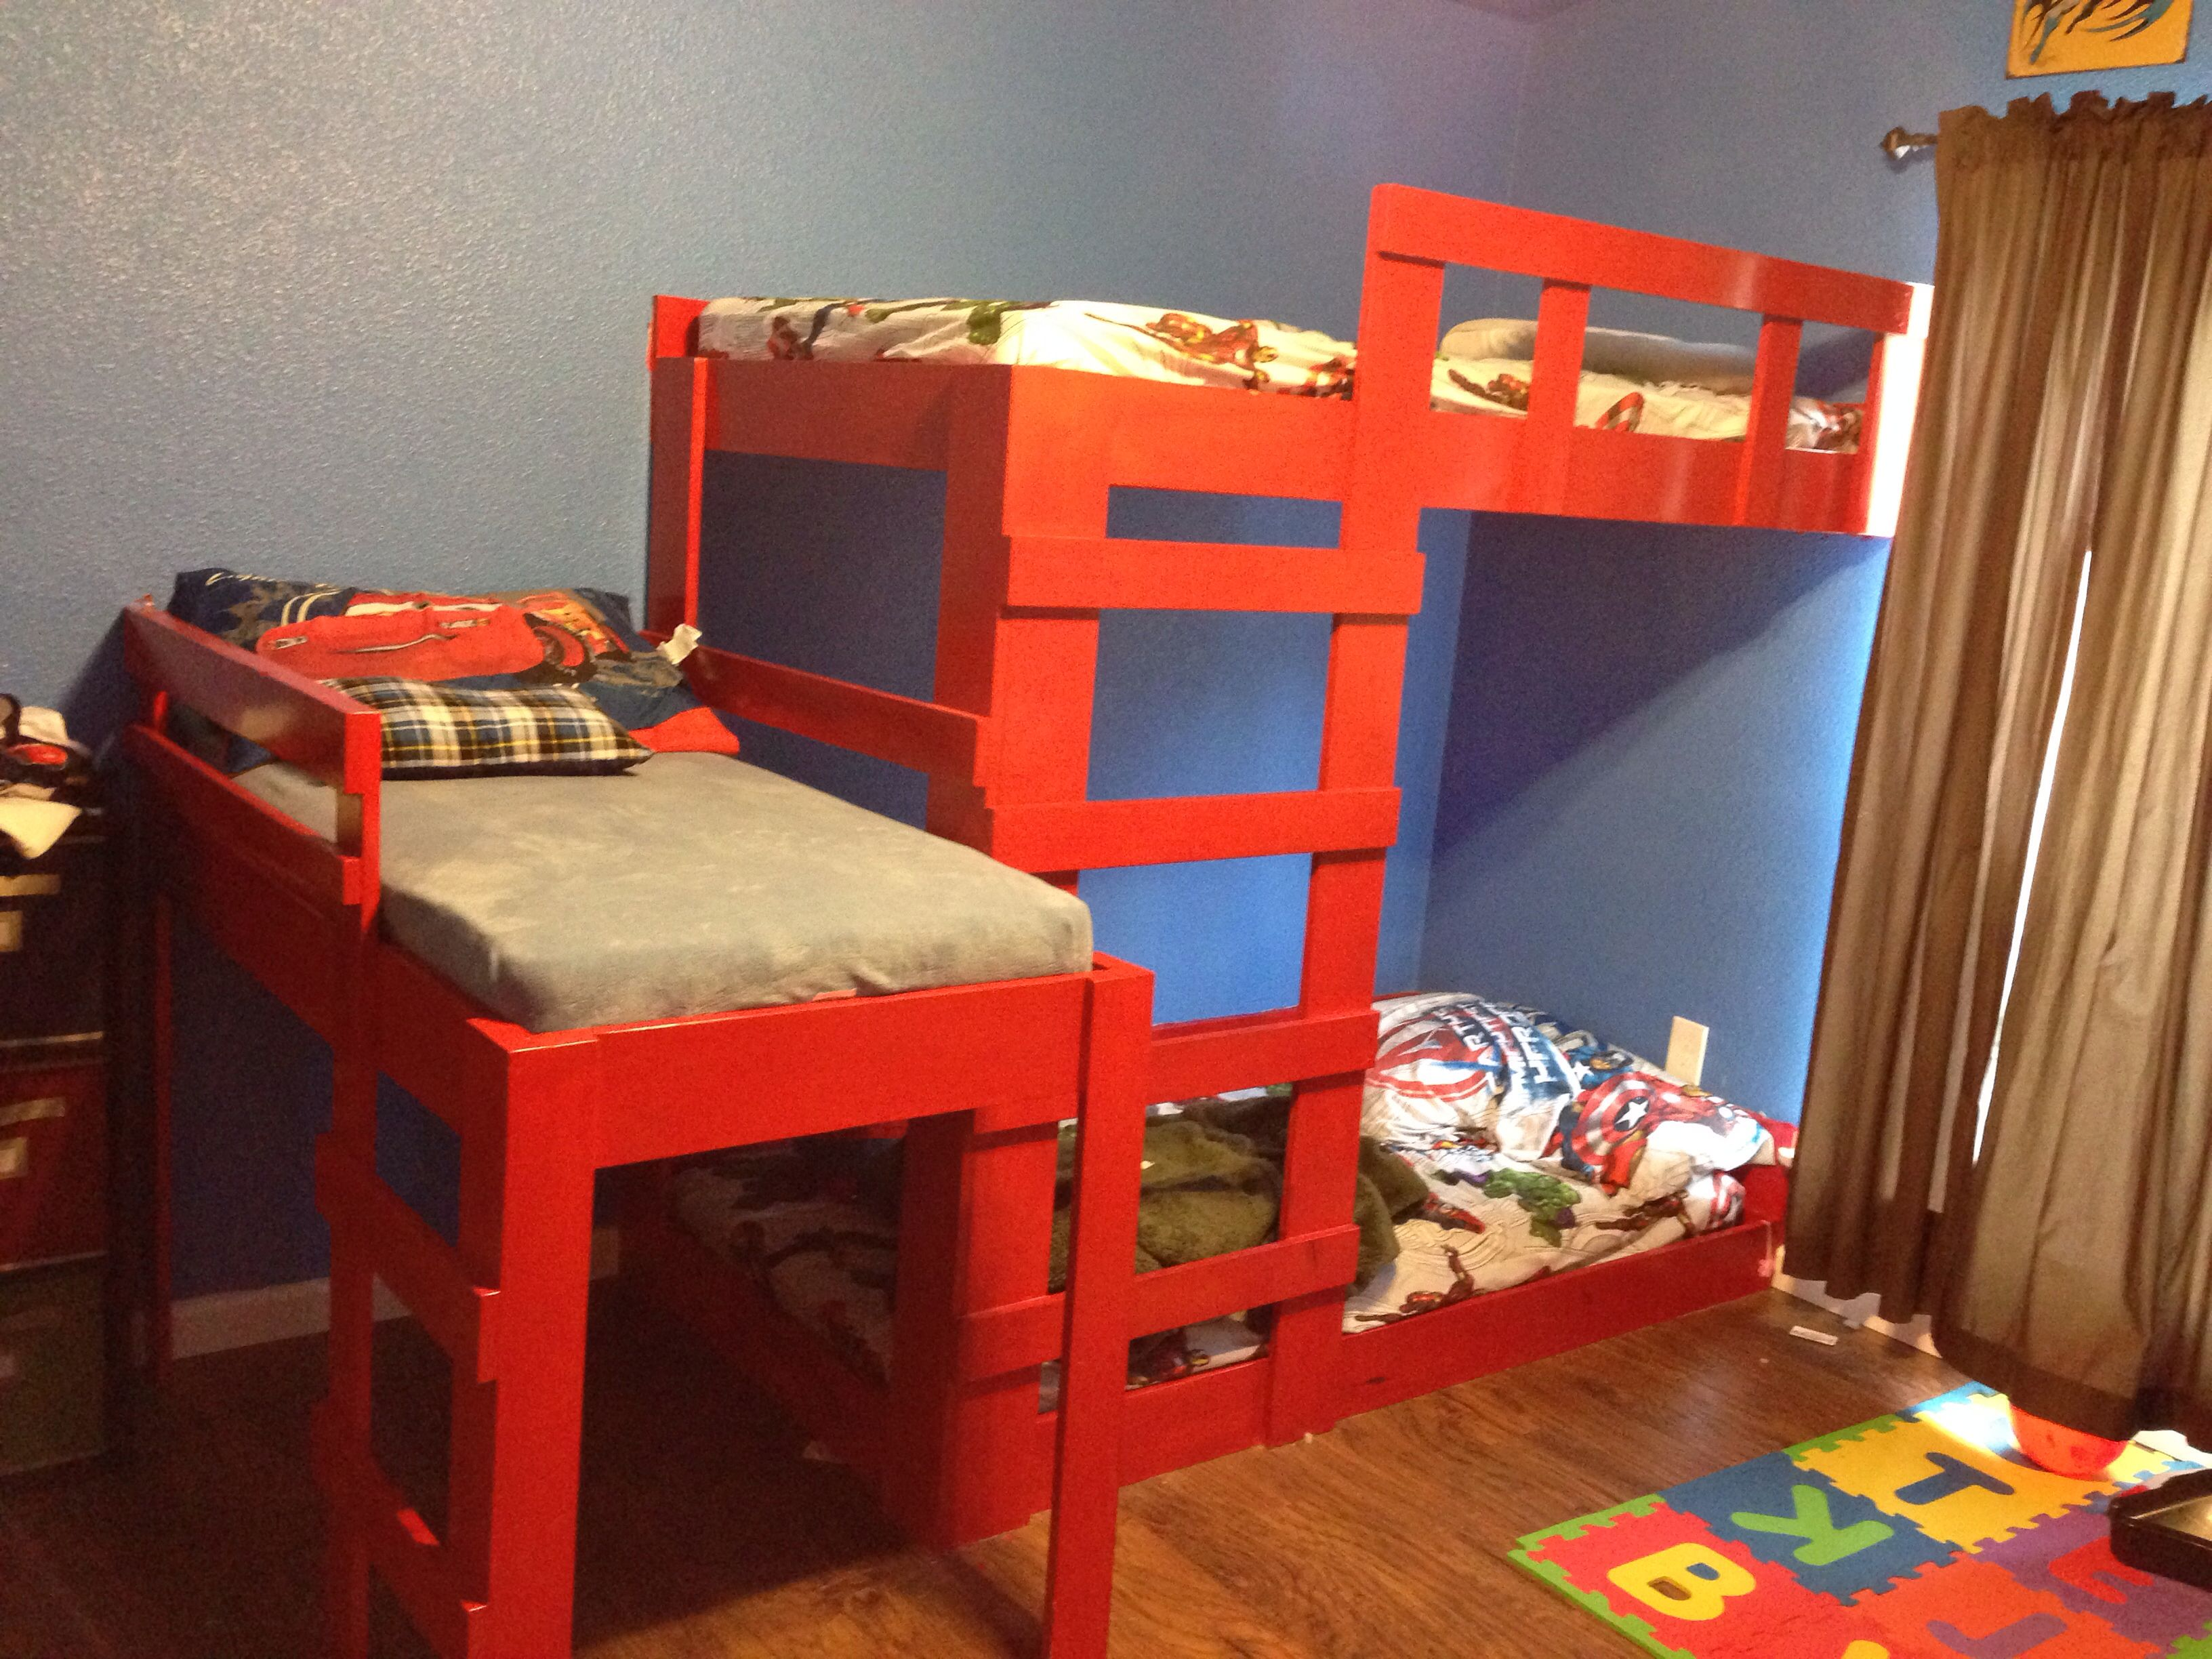 Toddler Boy Bed Ideas: DIY Bunk Bed For 3 Boys Or 3 Girls Since We Aren't Sure